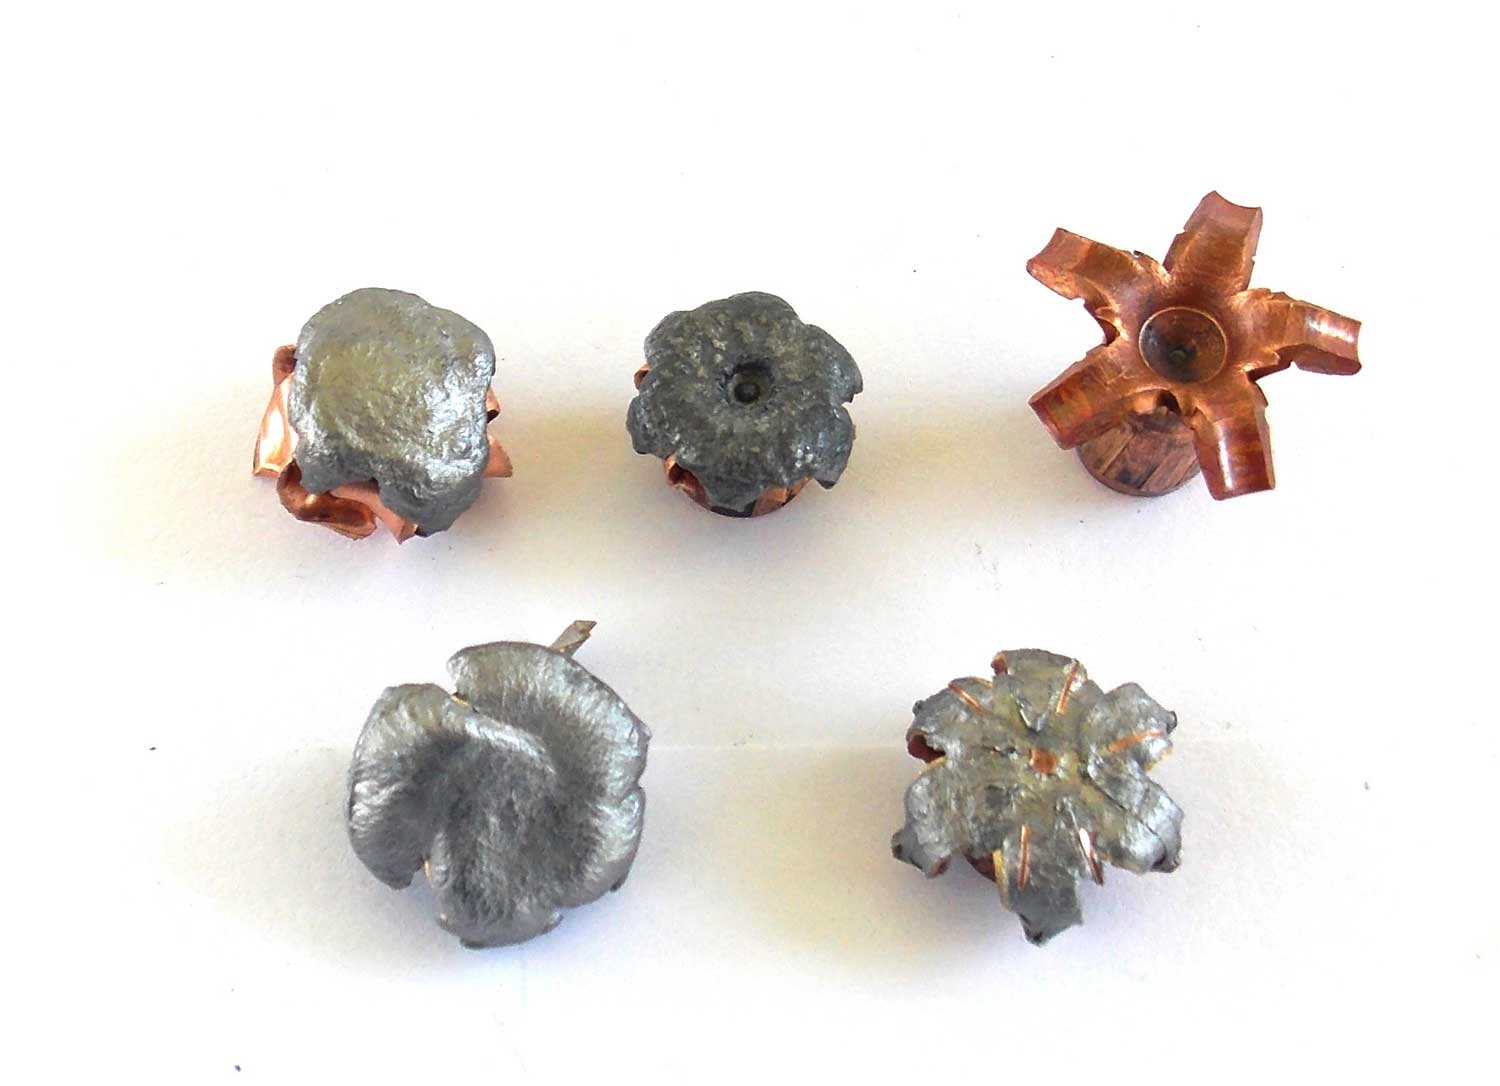 5 expanded 9mm bullets